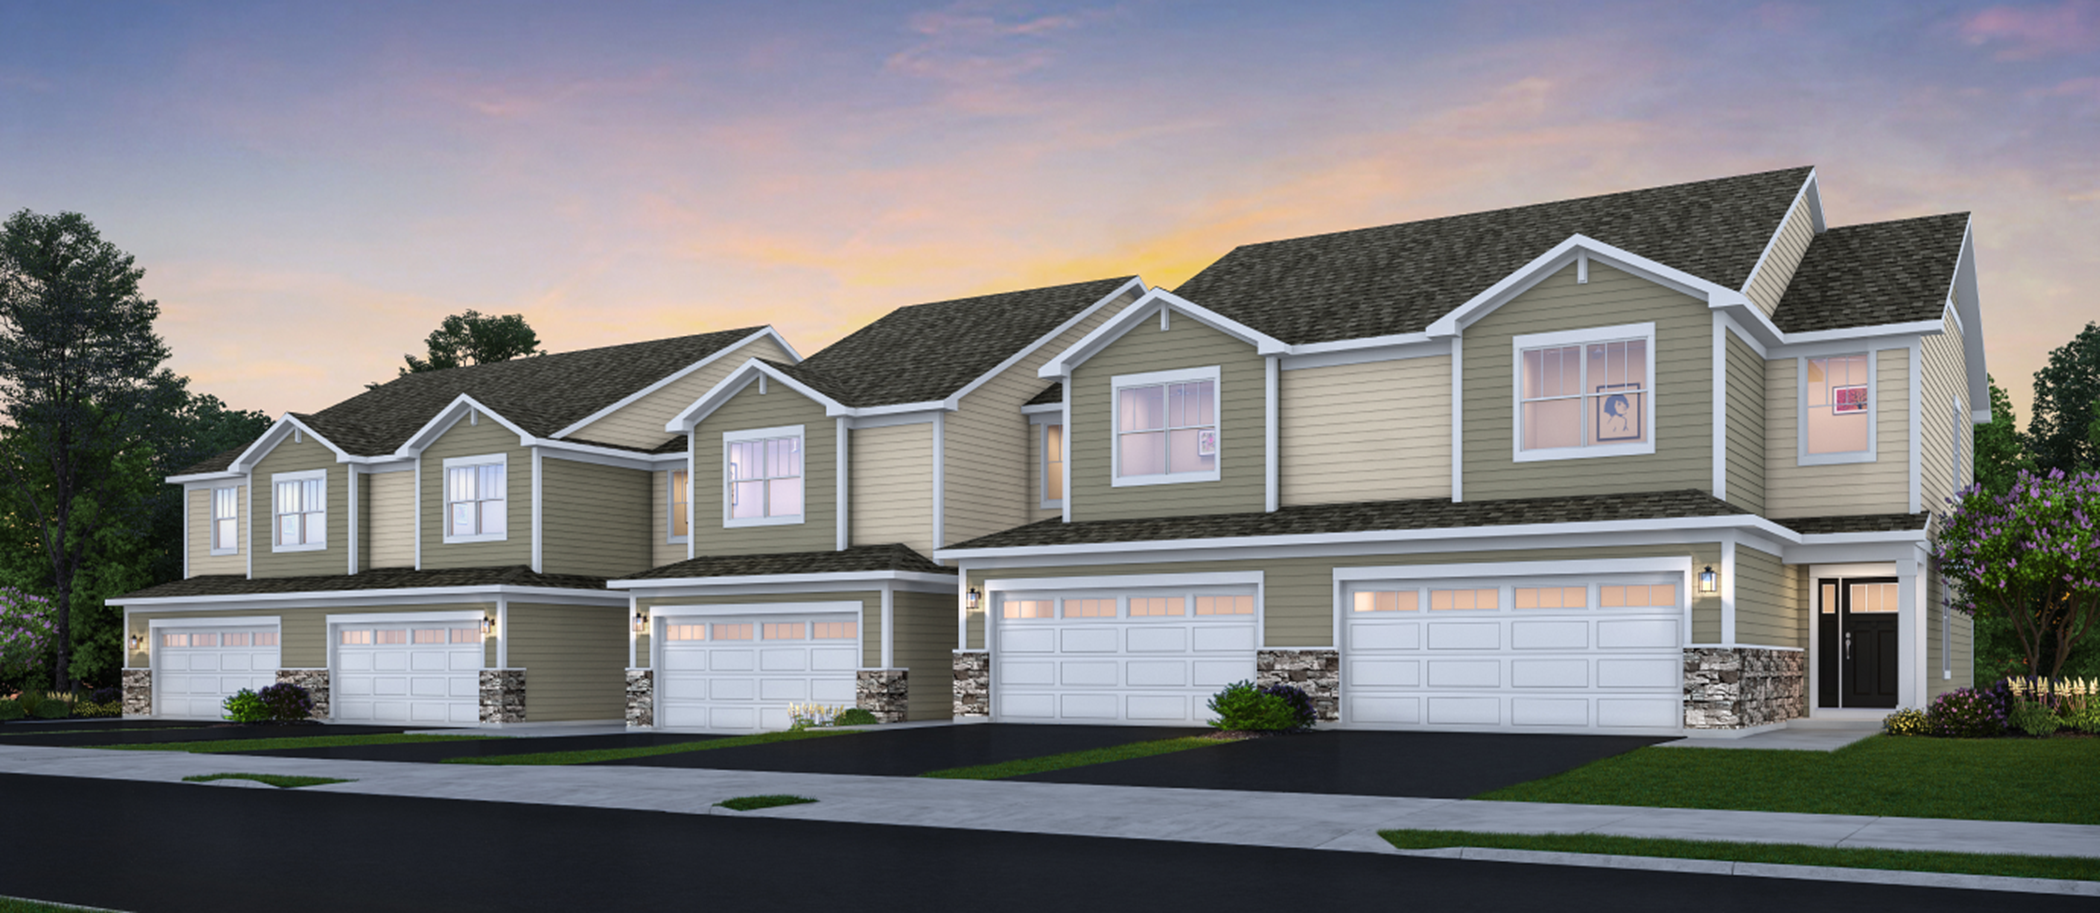 ParkPointe Traditional Exterior